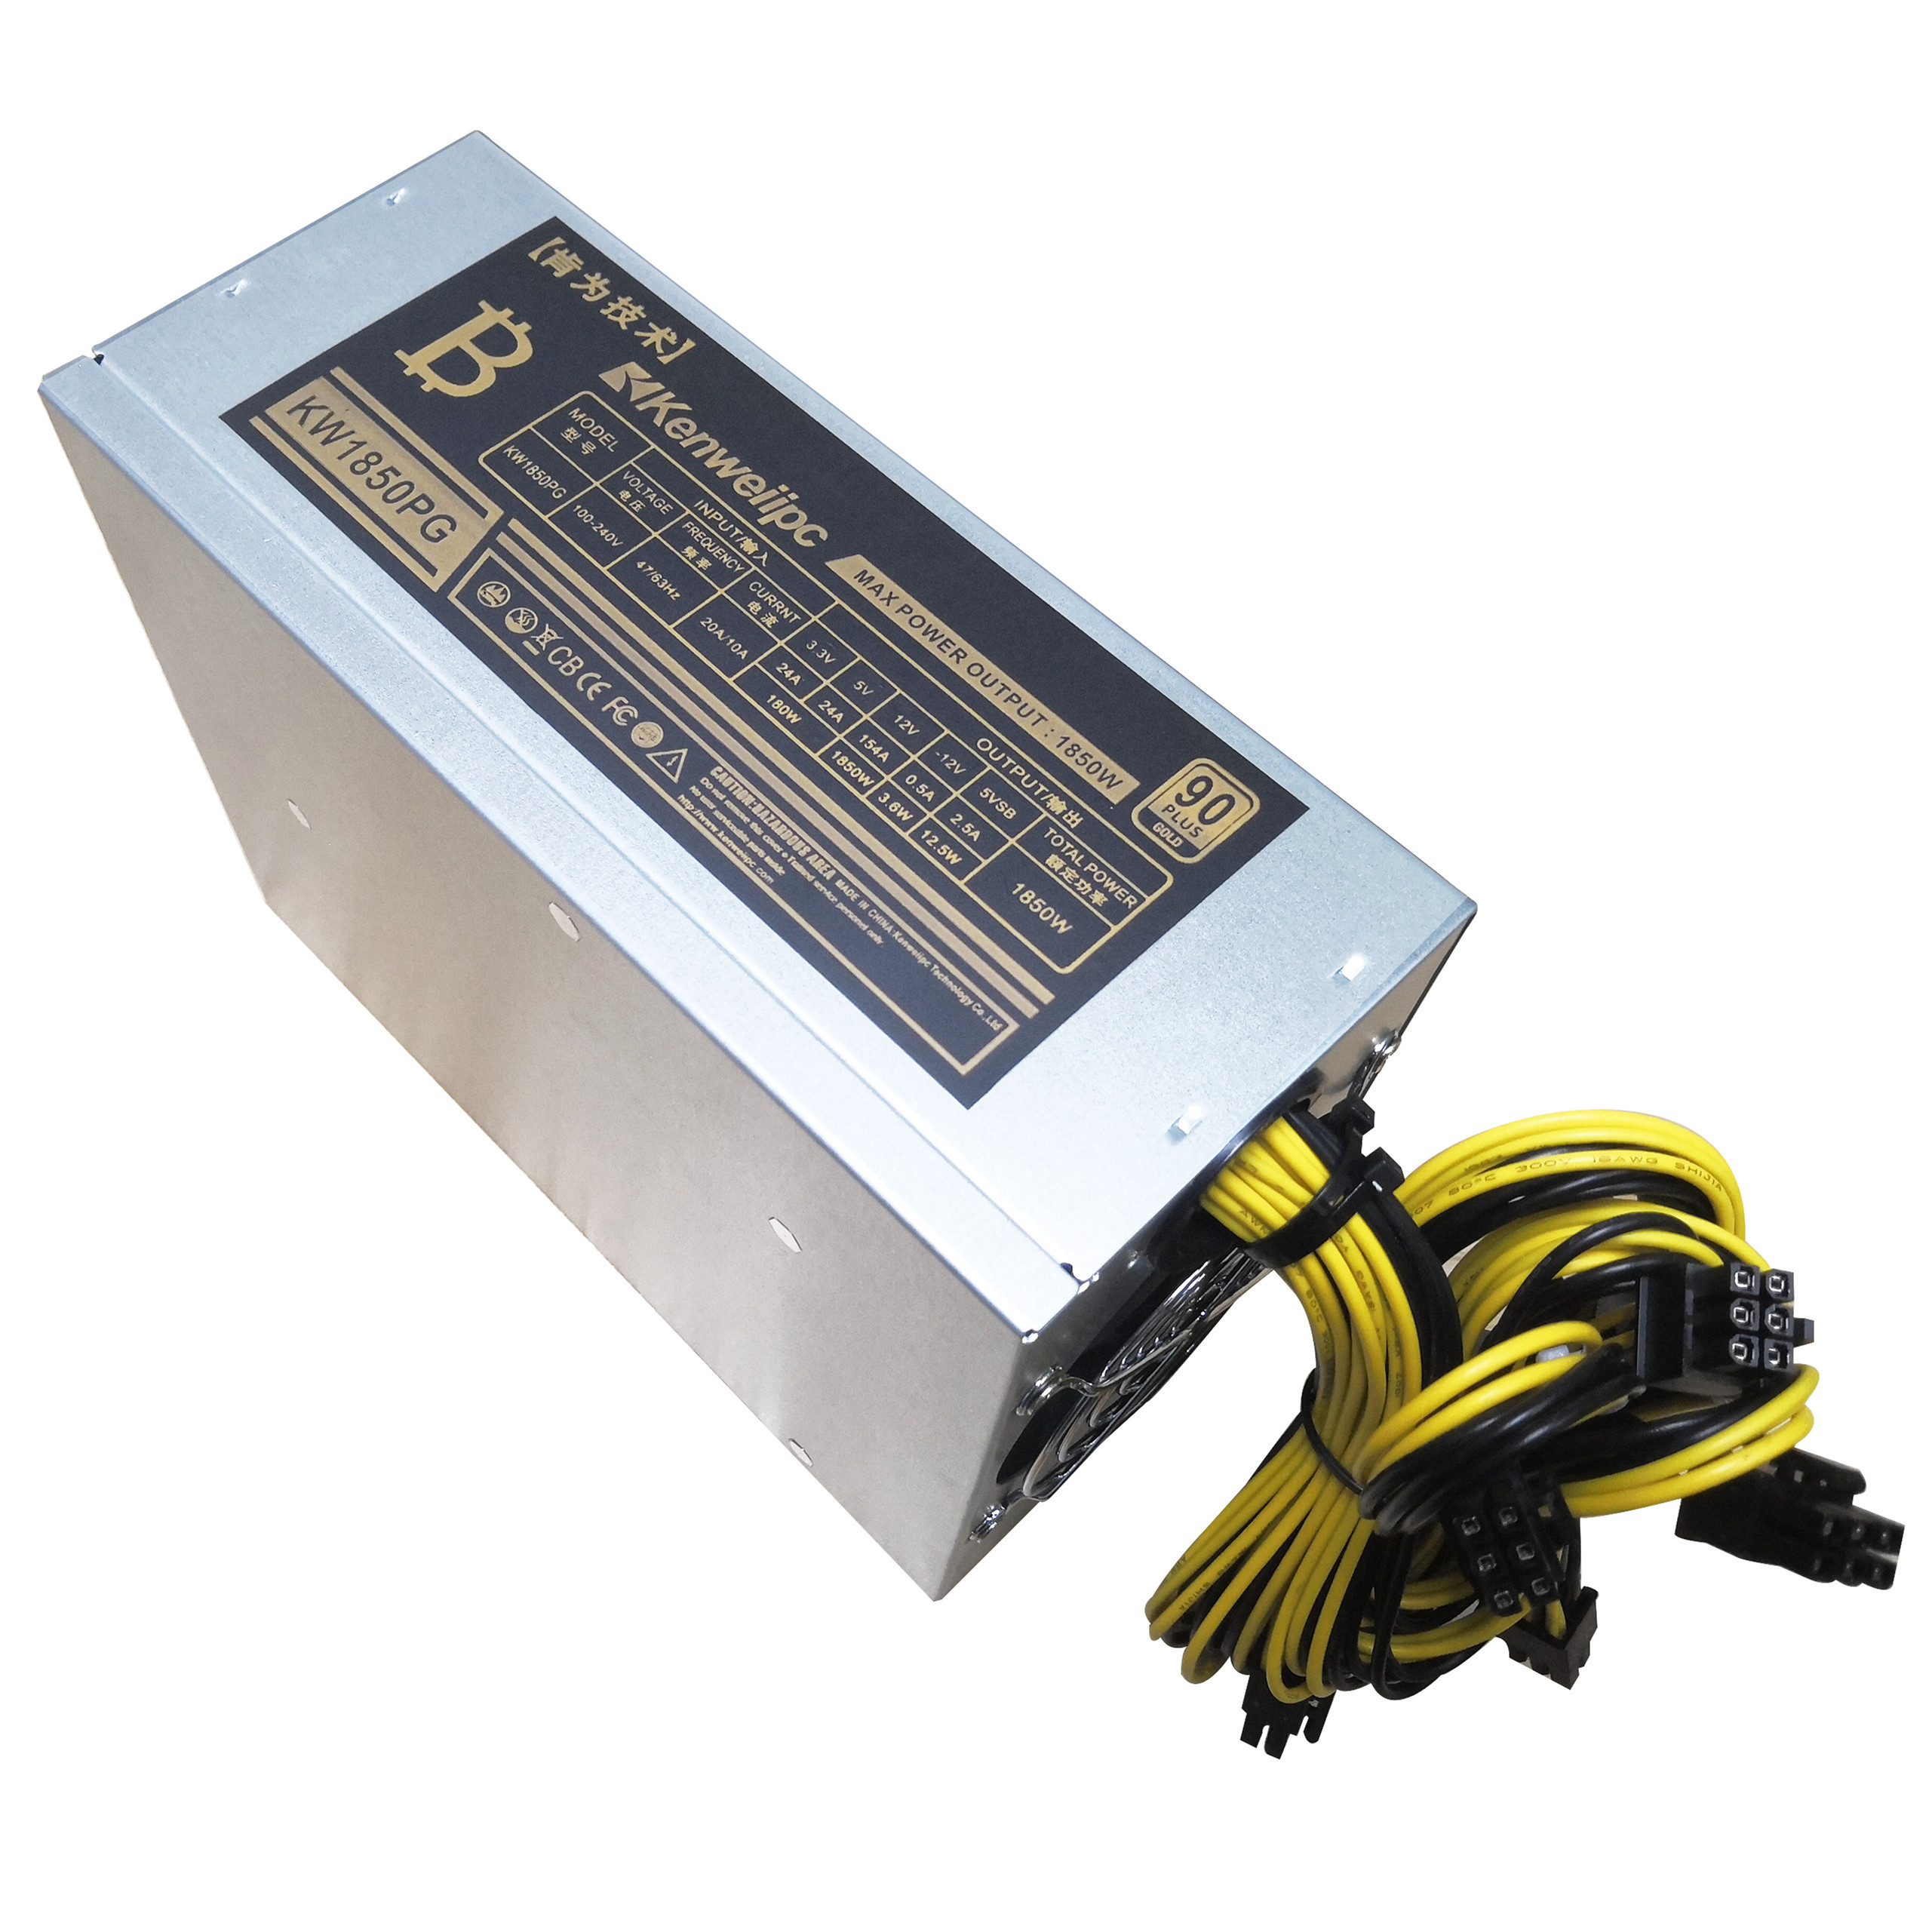 1800W Power Supply Mining Machine 6Pin 12V For Eth BTC Rig Ethereum Coin Miner